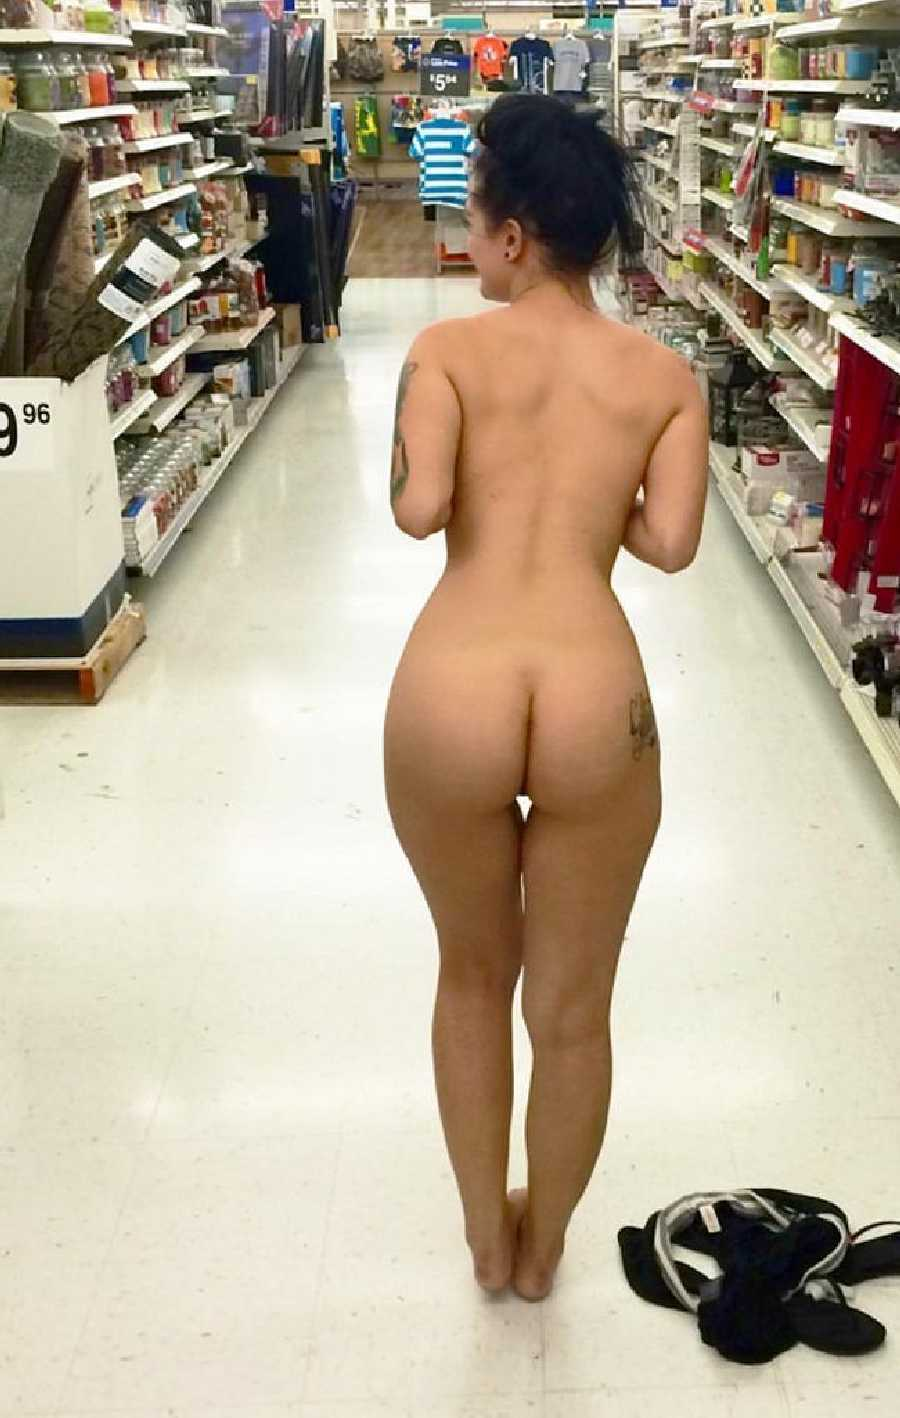 Walmart girl topless naked, xxgifs grandmother has sex